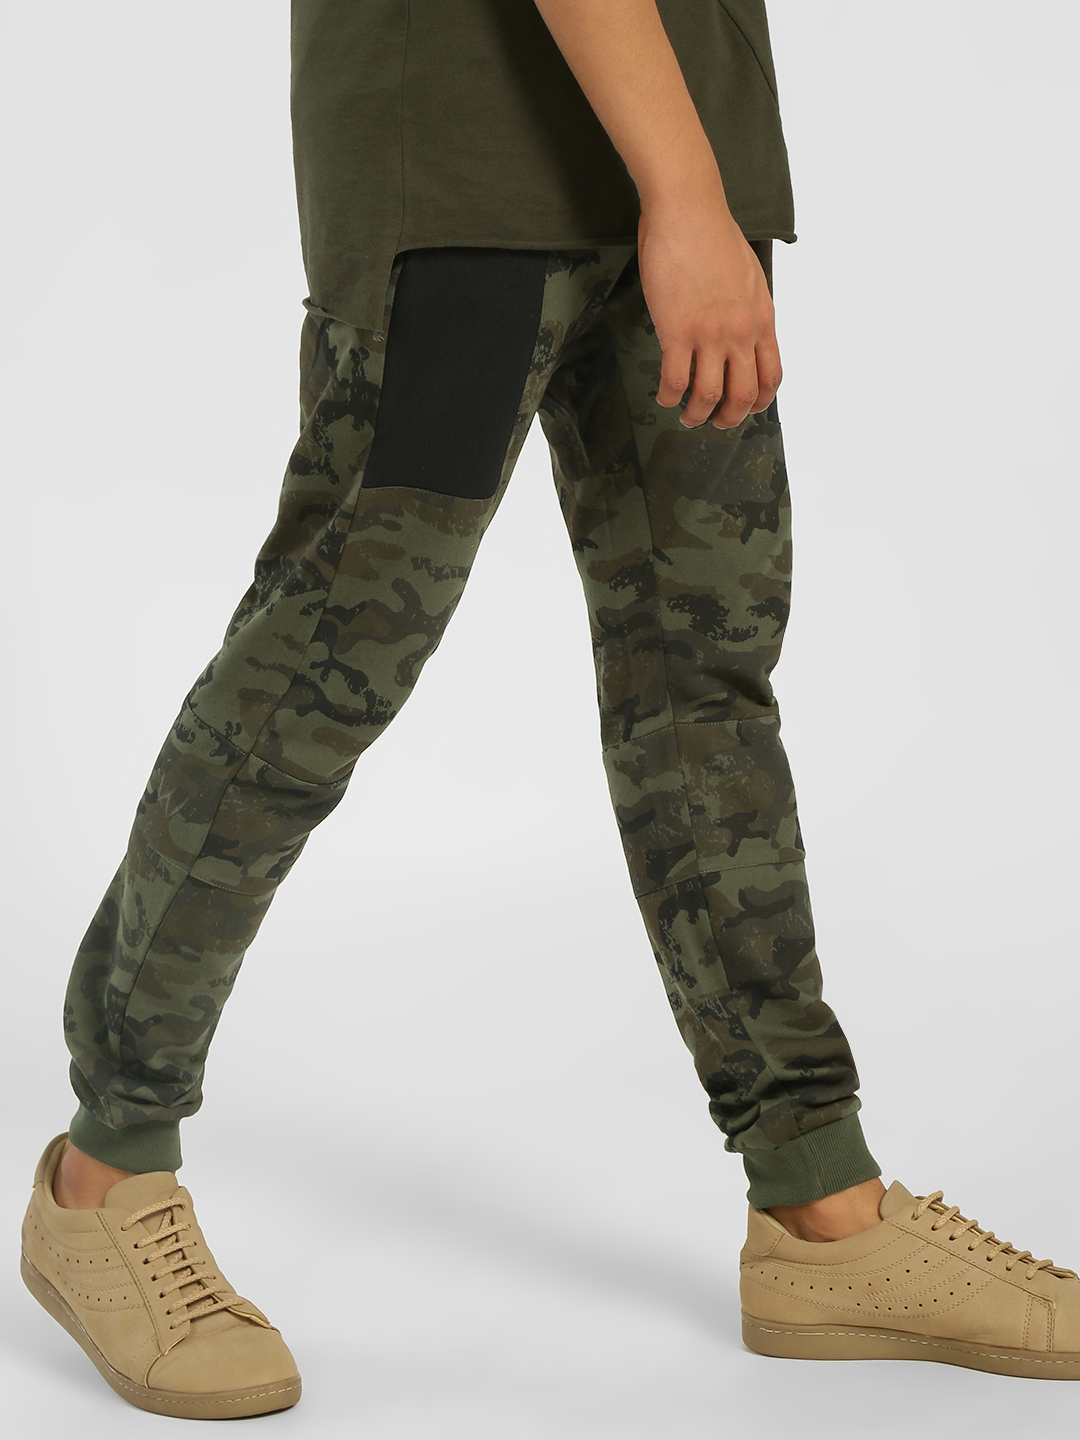 SKULT By Shahid Kapoor Multi Camo Print Side Panel Joggers 1